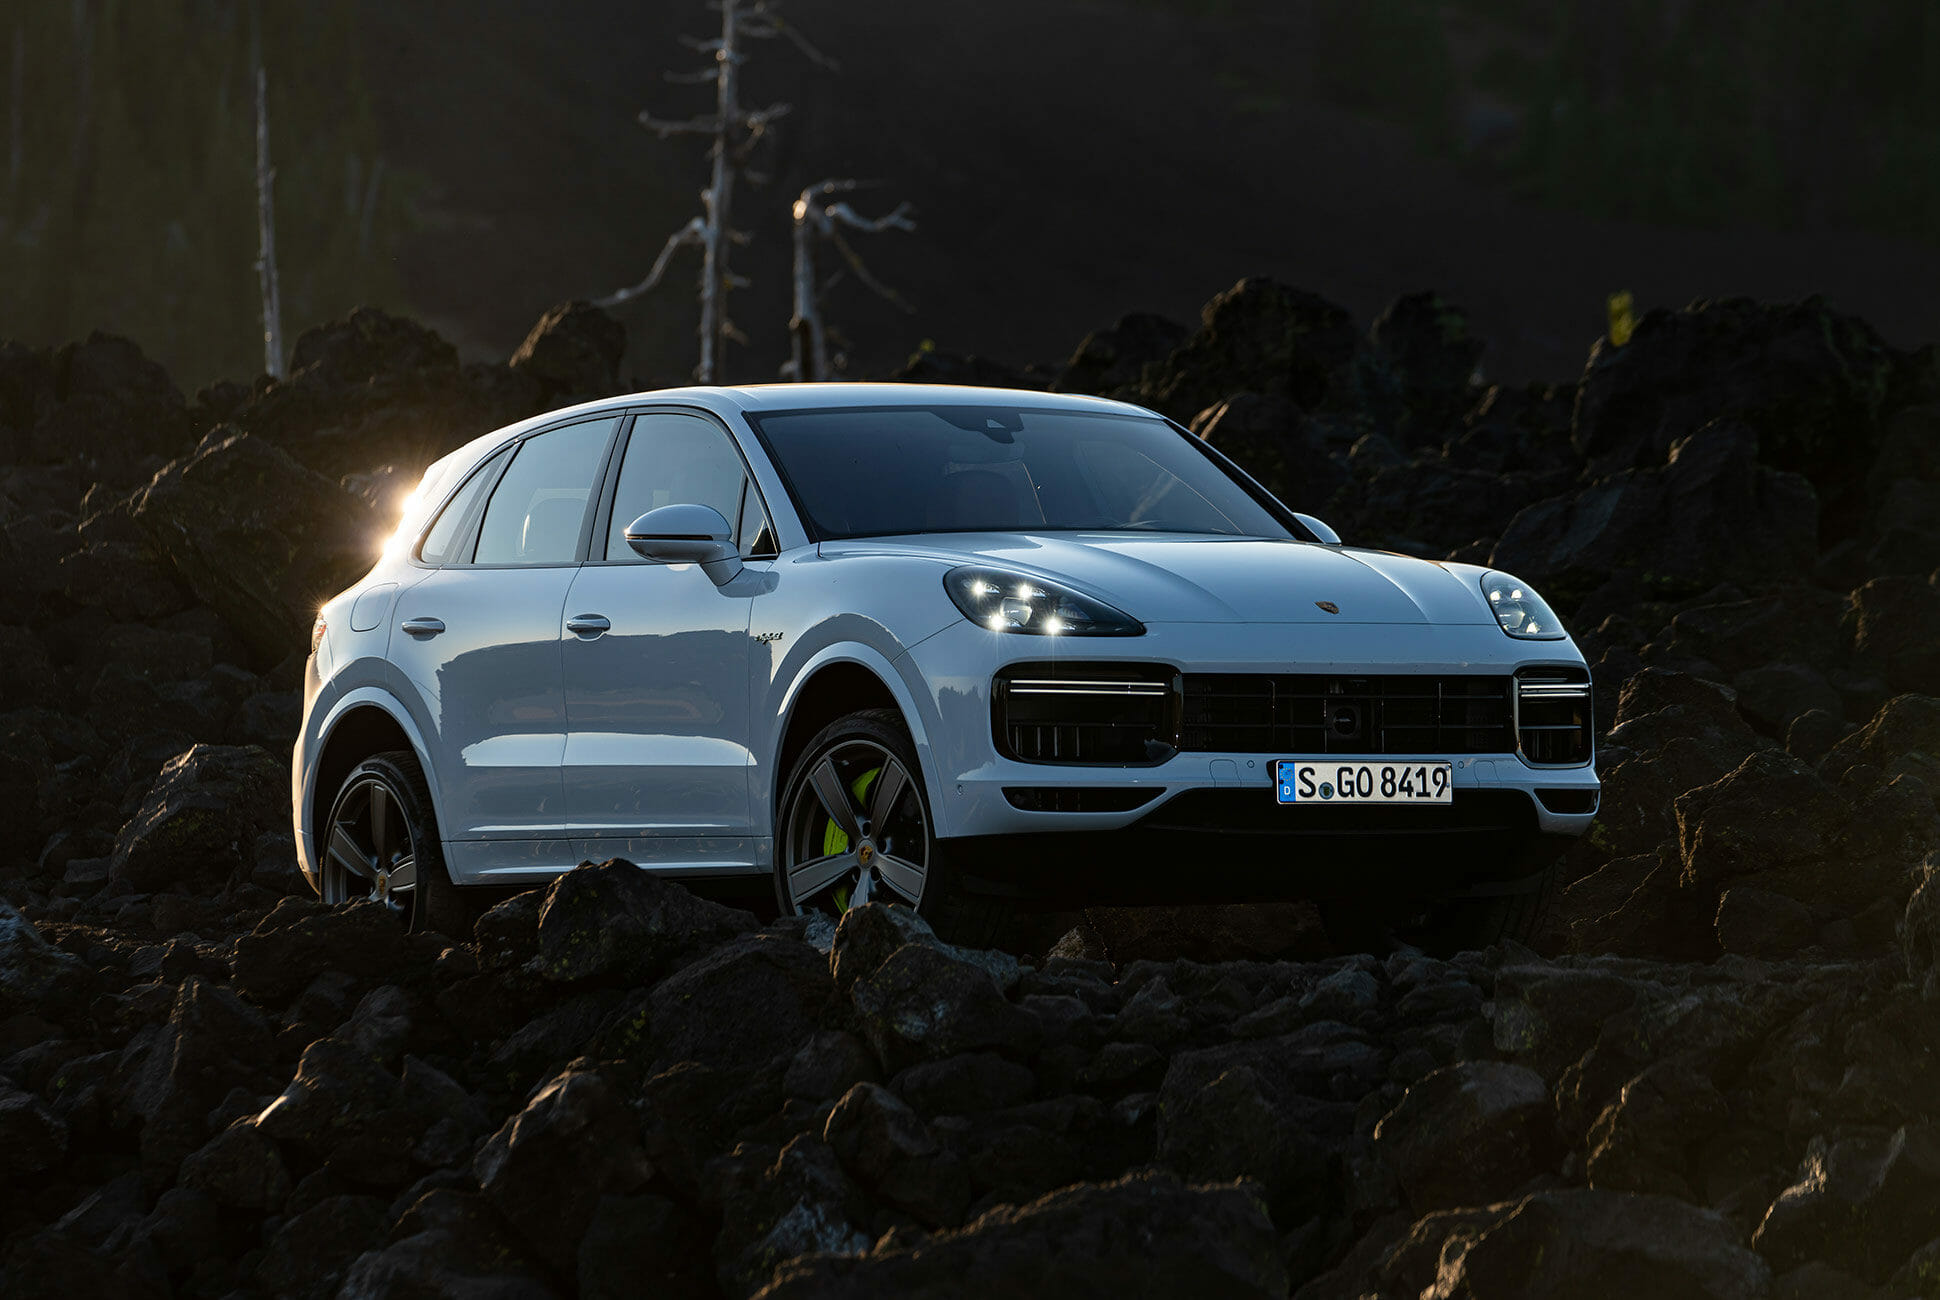 Pair-of-High-Tech-Porsche-Cayenne-Hybrids-gear-patrol-lead-slide-5